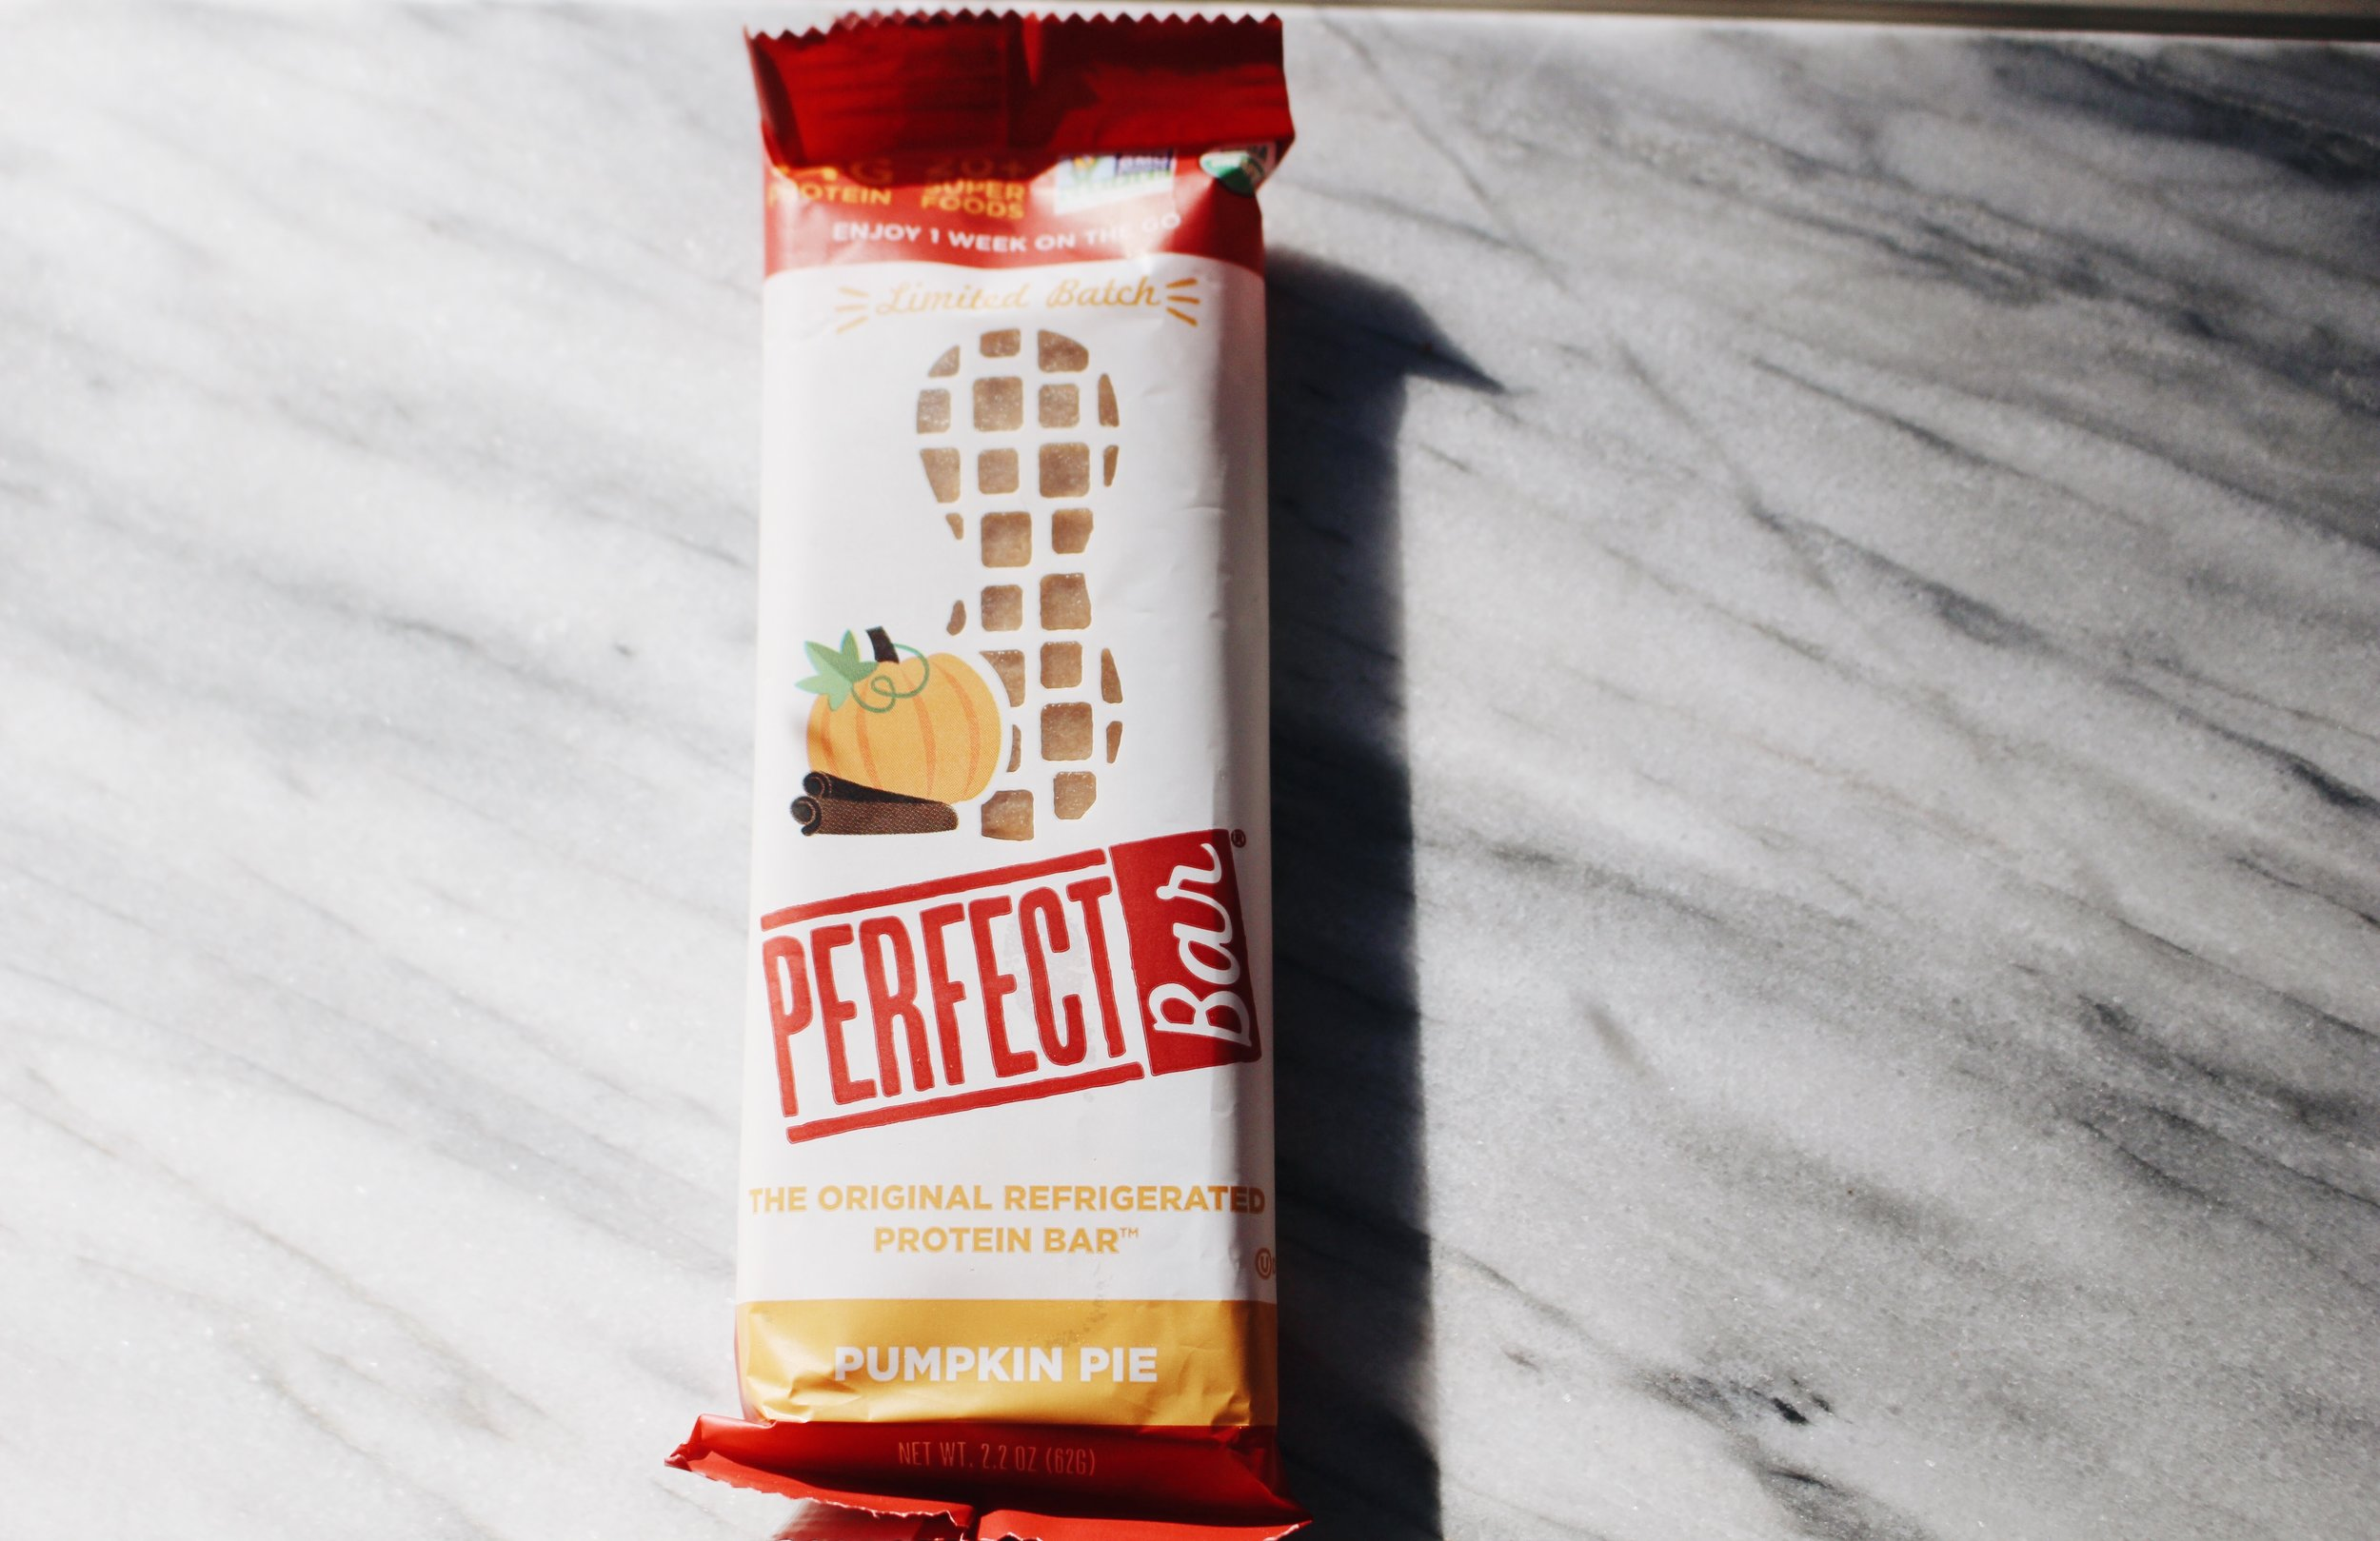 """PERFEcT BAR - These are such a treat. Have it for breakfast, after the gym, cut up in your morning yogurt bowl, whatever suits you. The fruit & nut flavor is a favorite here at Duvei. These bars are packed with superfoods, protein and more goodness. (And you can get 15% off on their website with our code """"FAMCLUB15"""".)"""